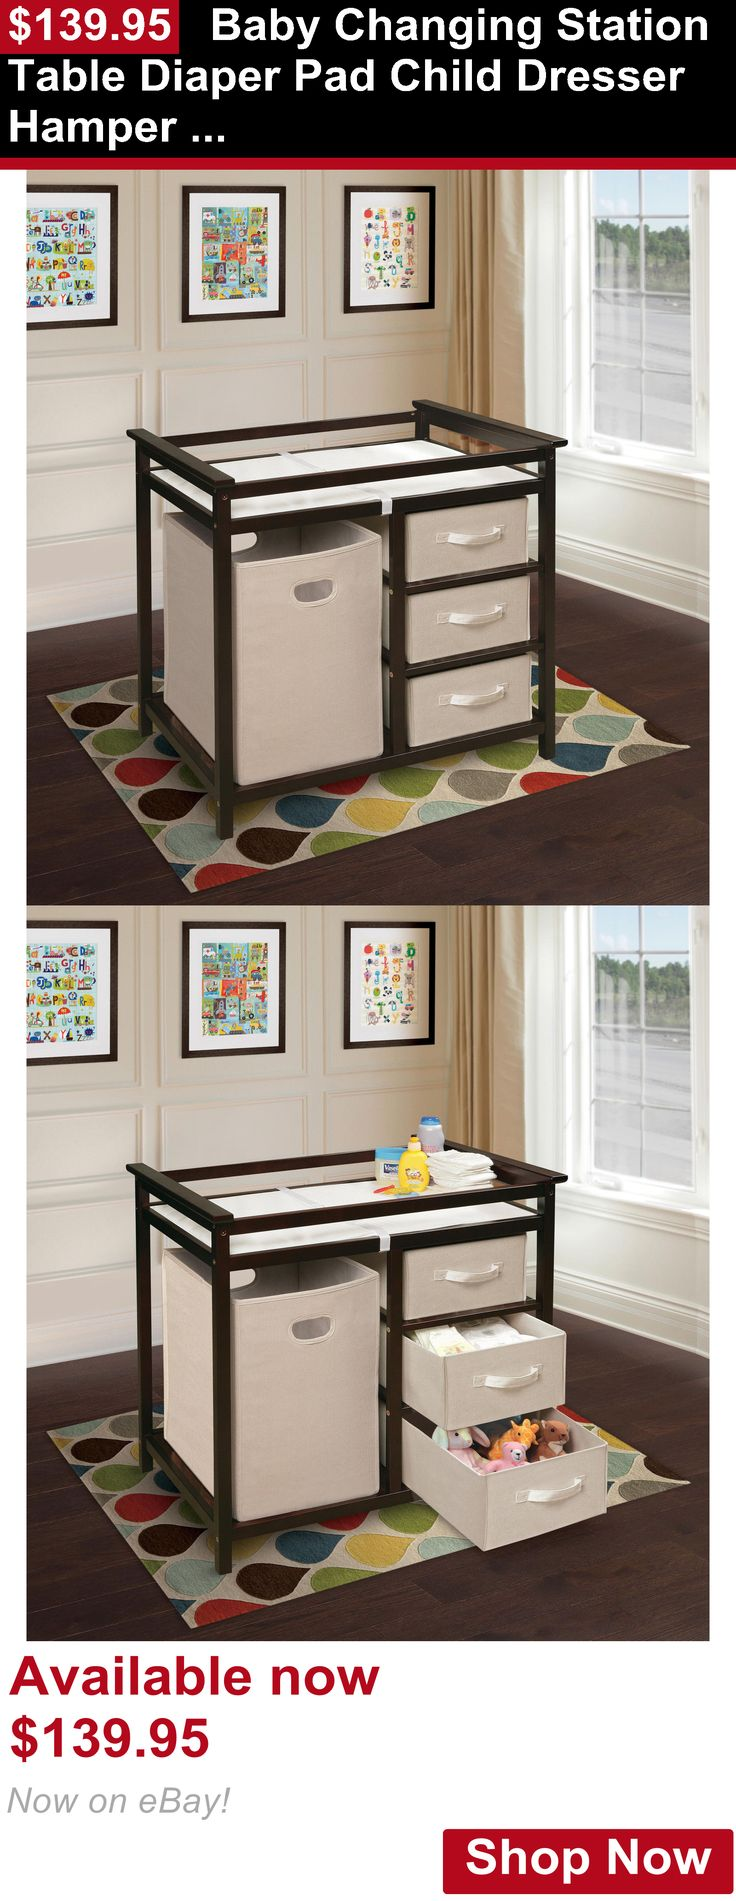 Changing Tables: Baby Changing Station Table Diaper Pad Child Dresser Hamper Espresso Beige Color BUY IT NOW ONLY: $139.95